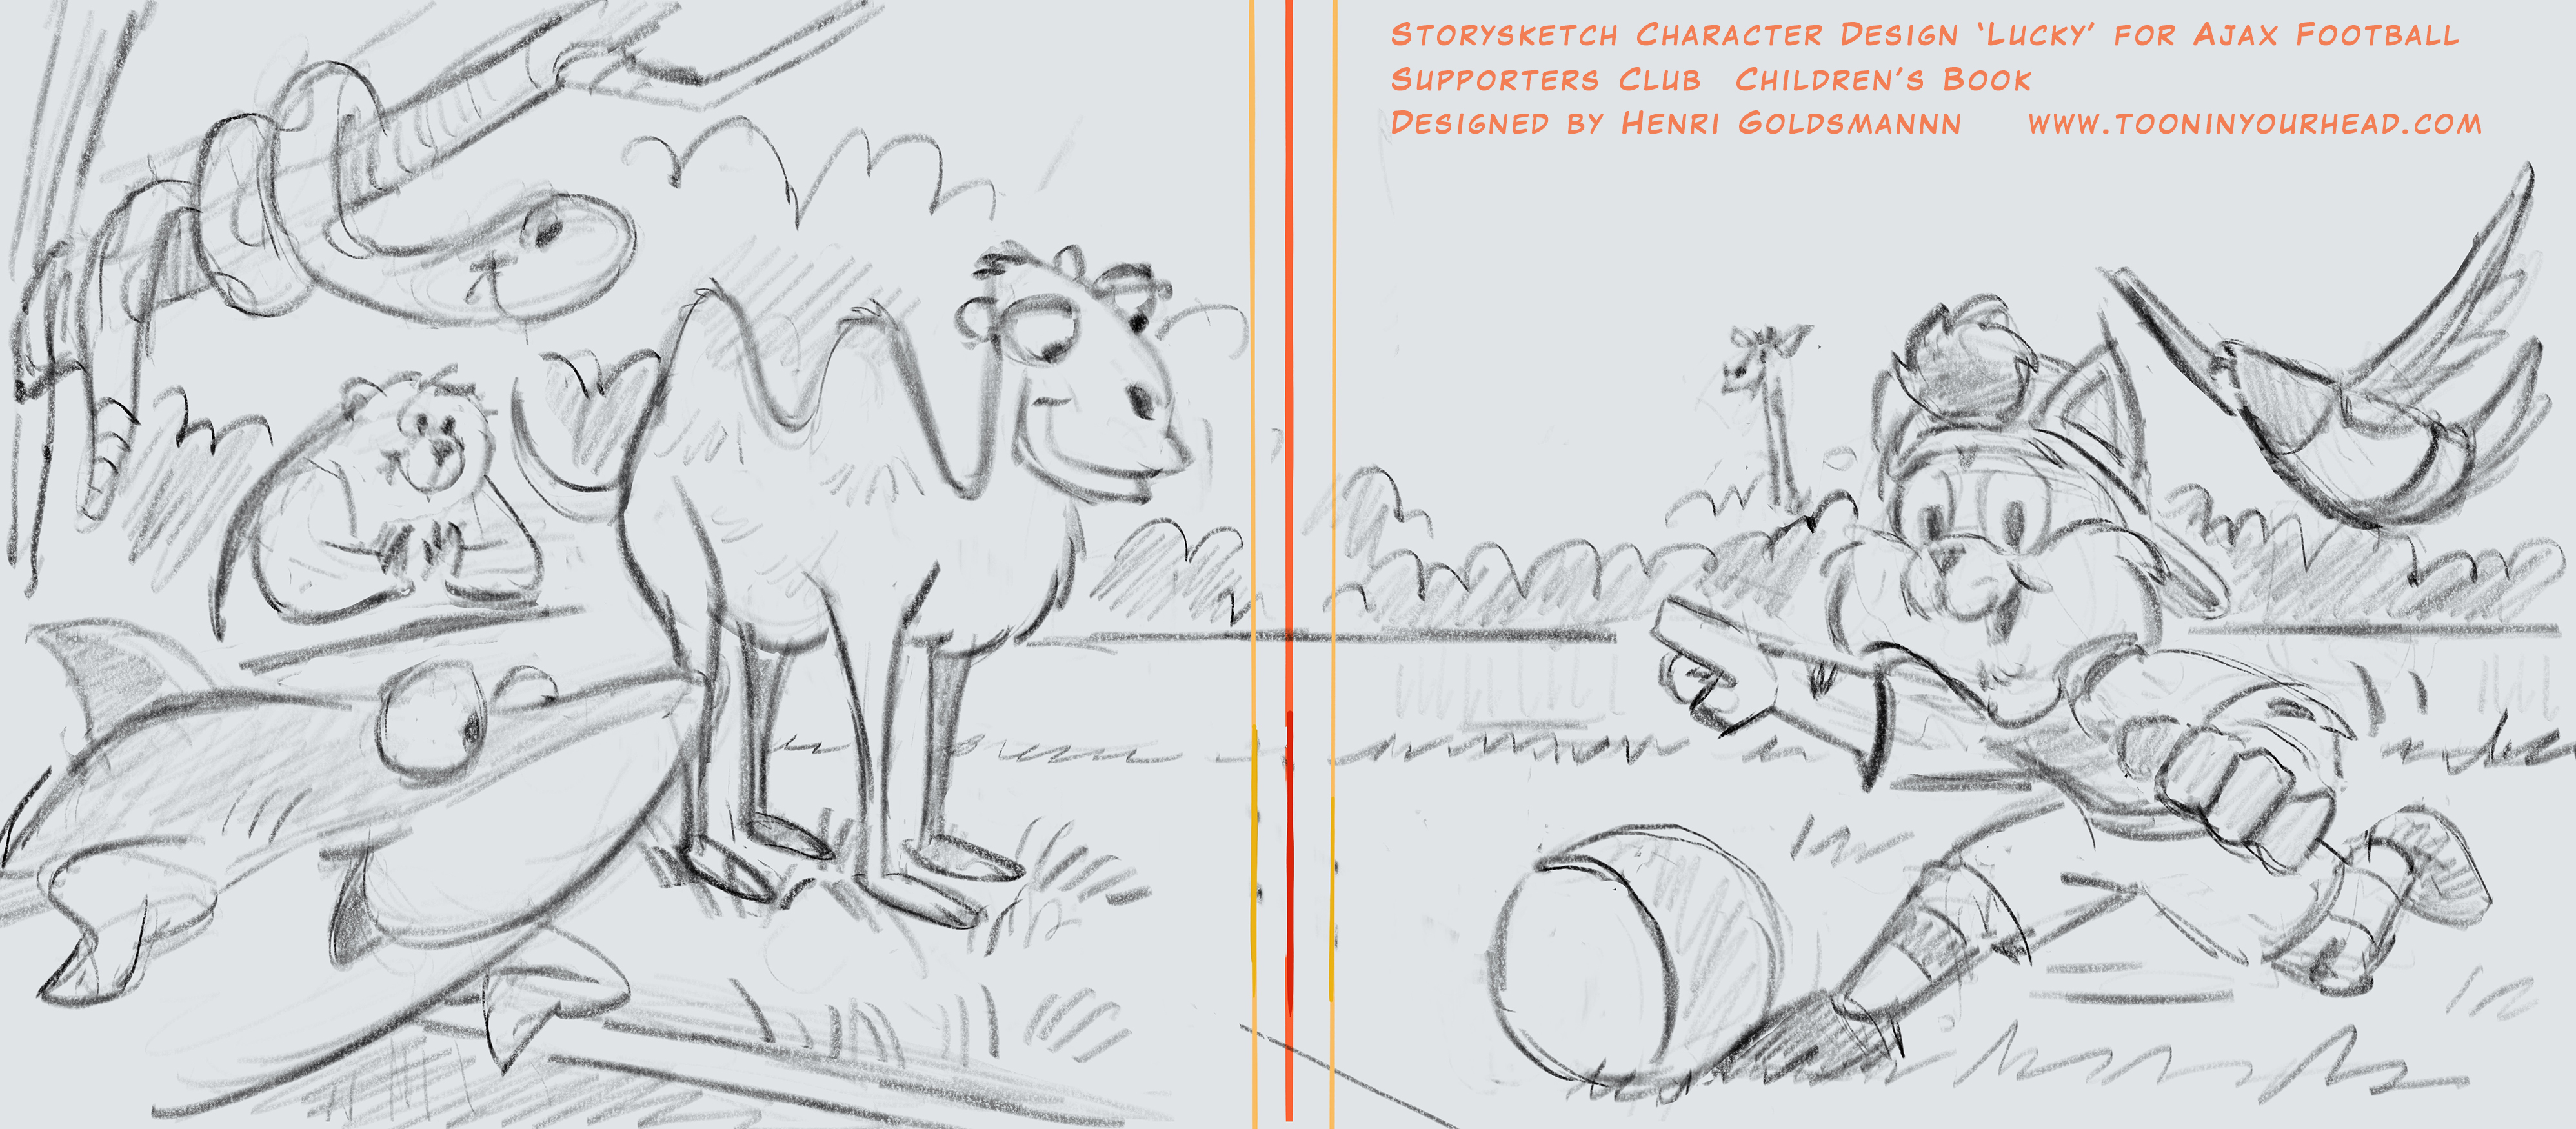 Character Design_Storyboard Sketch